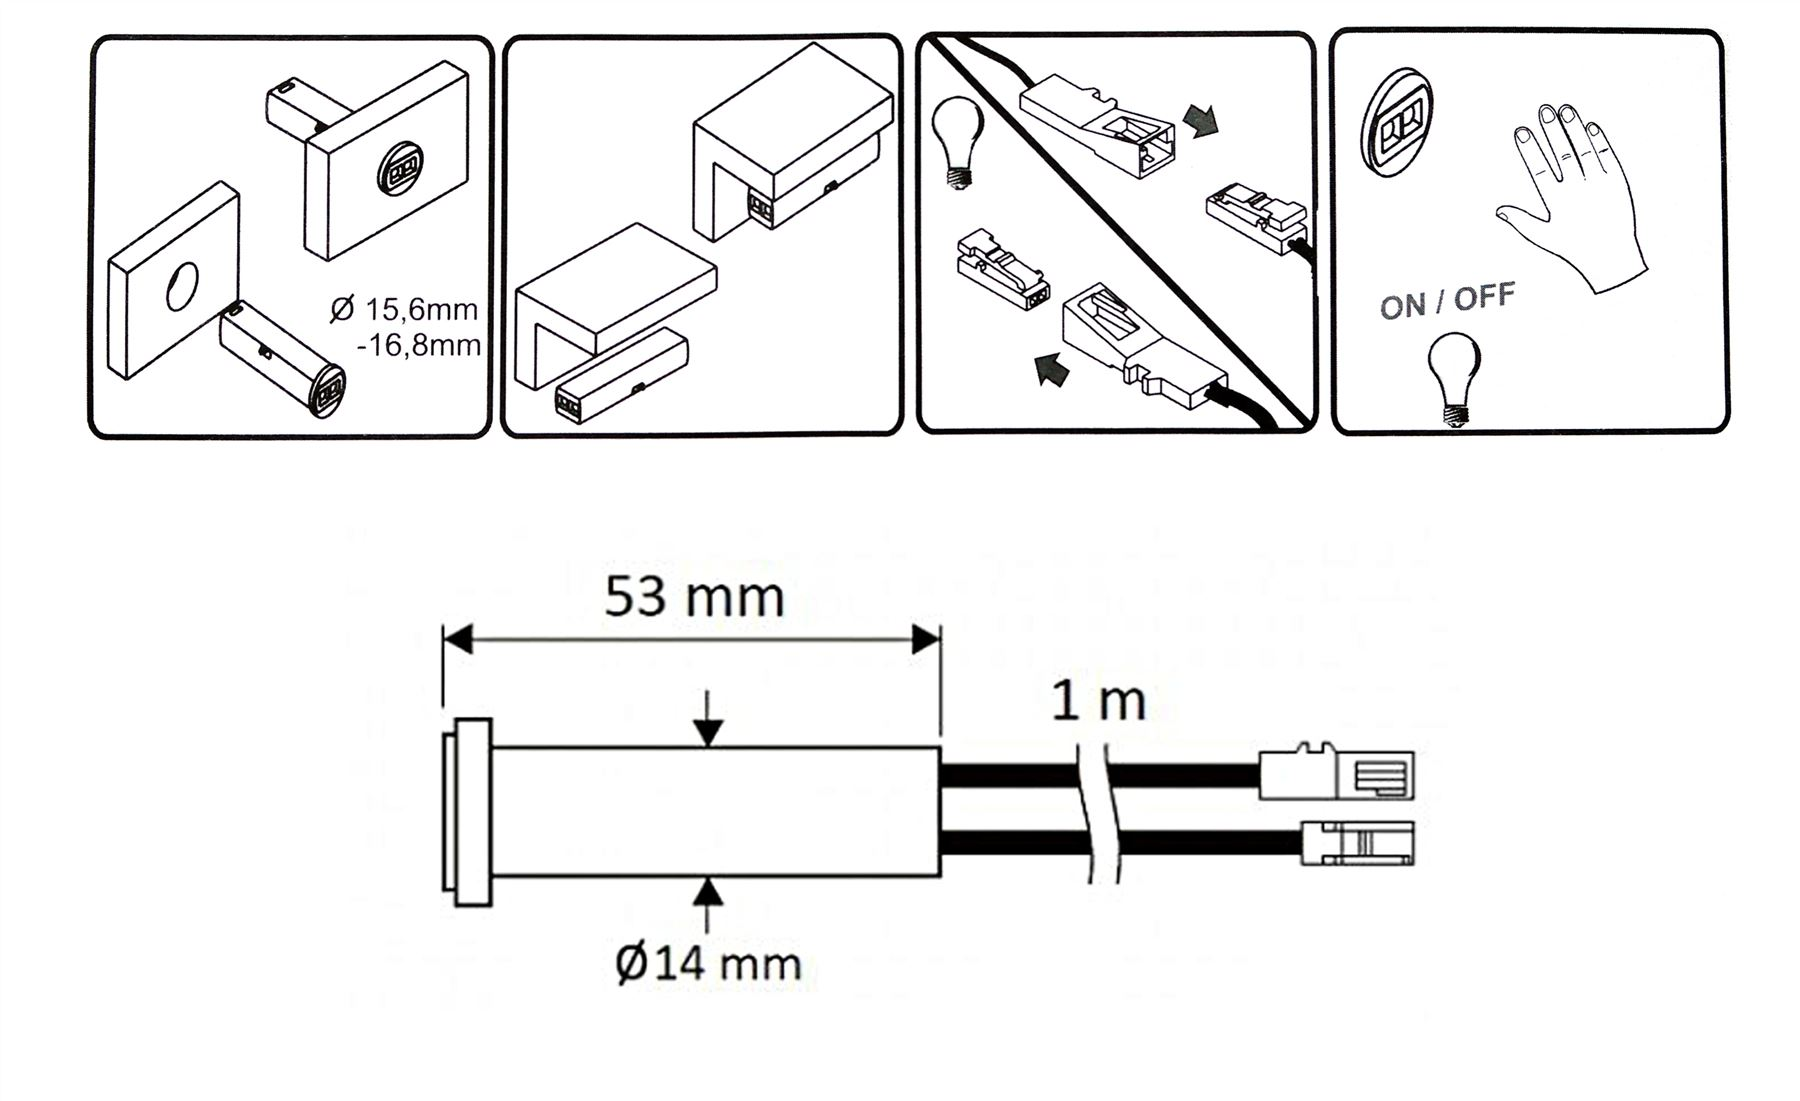 Wiring Diagram For Fluorescent Light With Carport